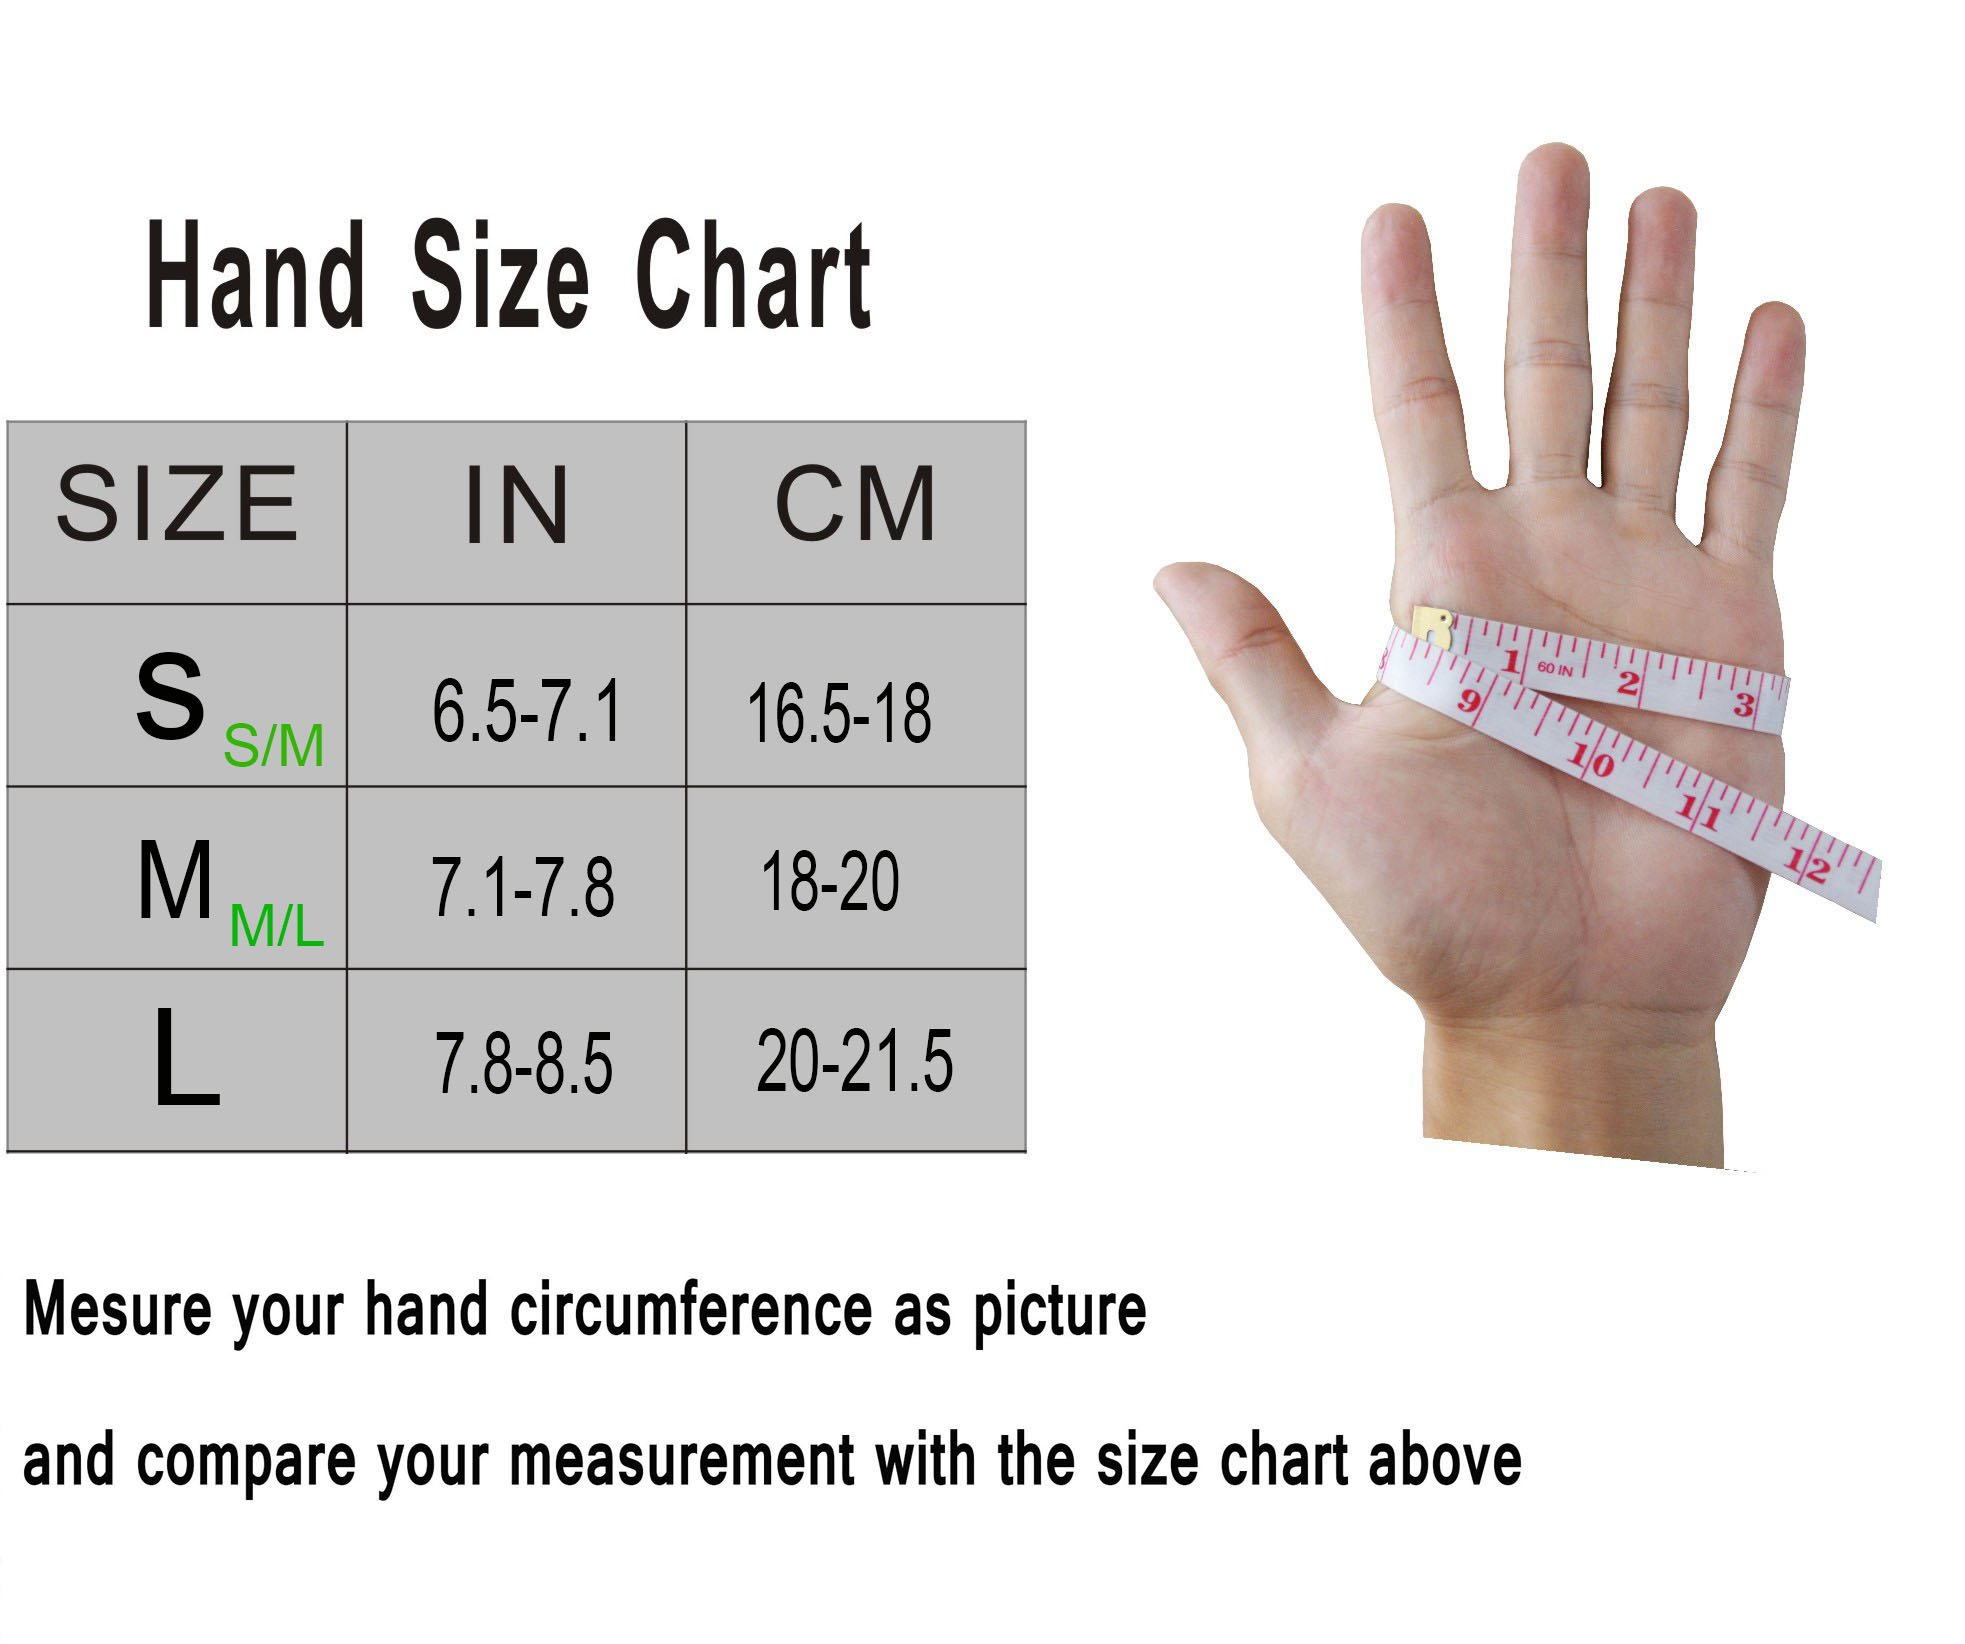 Goatskin Leather Gardening Gloves Women, 3D Mesh Comfort Fit- Improves Dexterity and Breathability Design, Scratch Resistance Garden Working Gloves for Vegetable or Pruning Roses (Small) by HANDLANDY (Image #6)